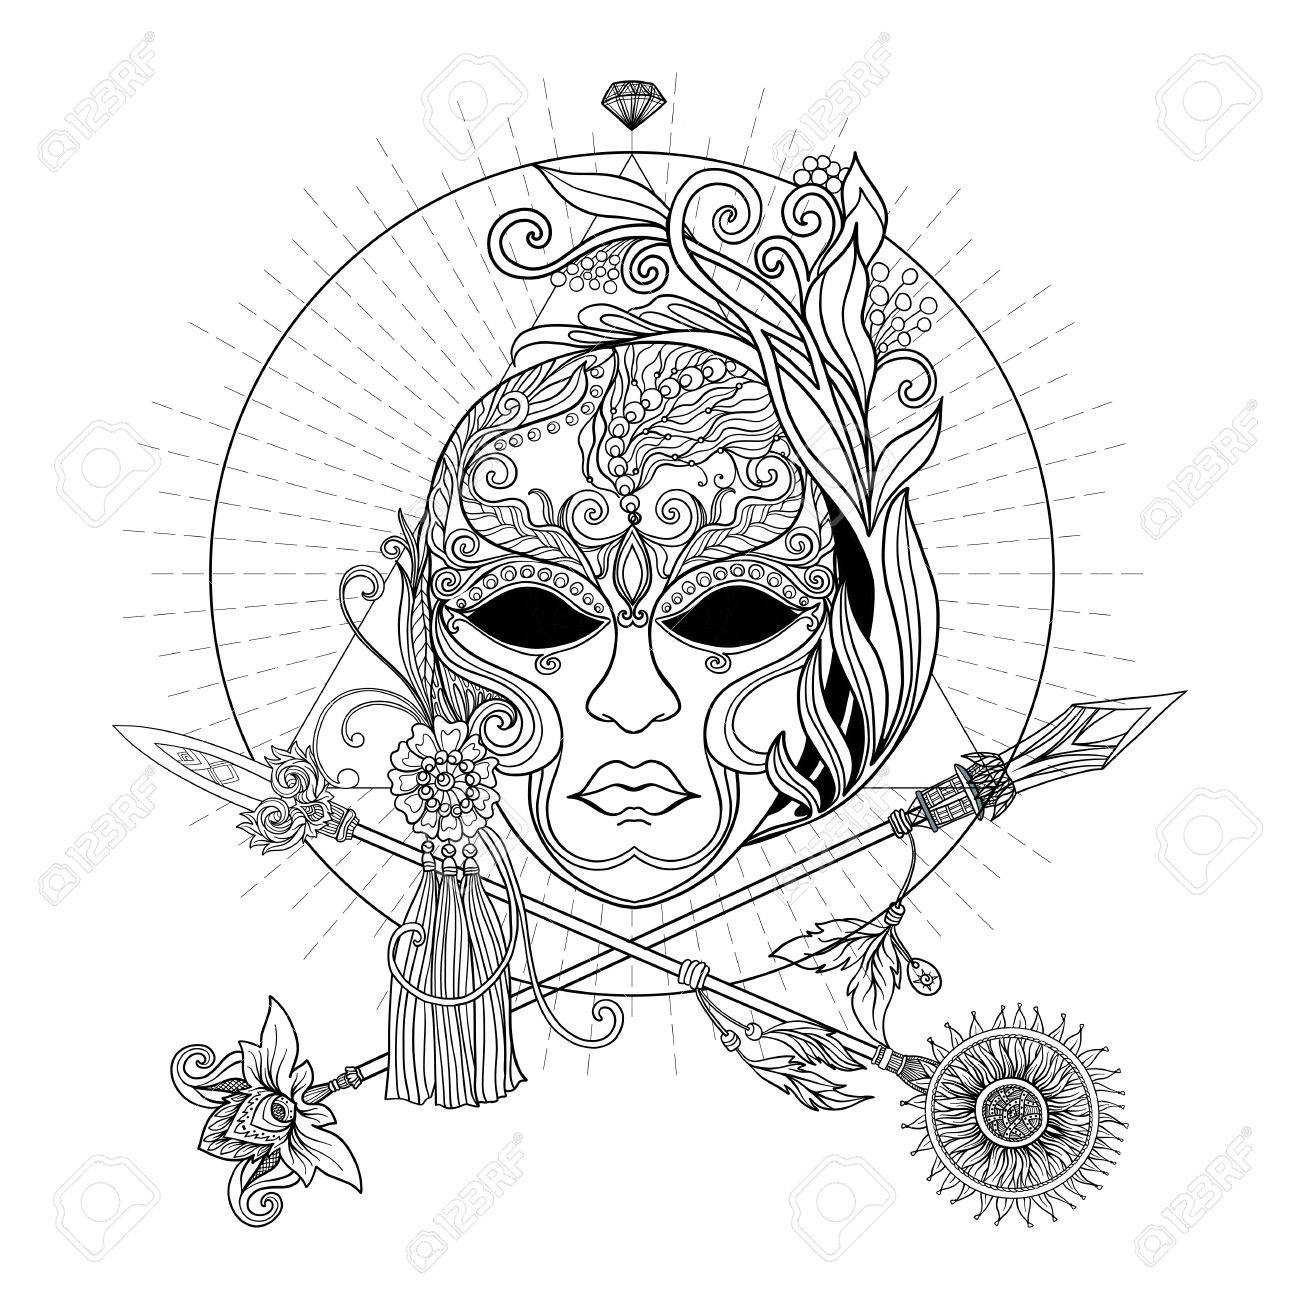 1300x1300 Venetian Carnival Mask And Crossed Swords. In Decorative Style